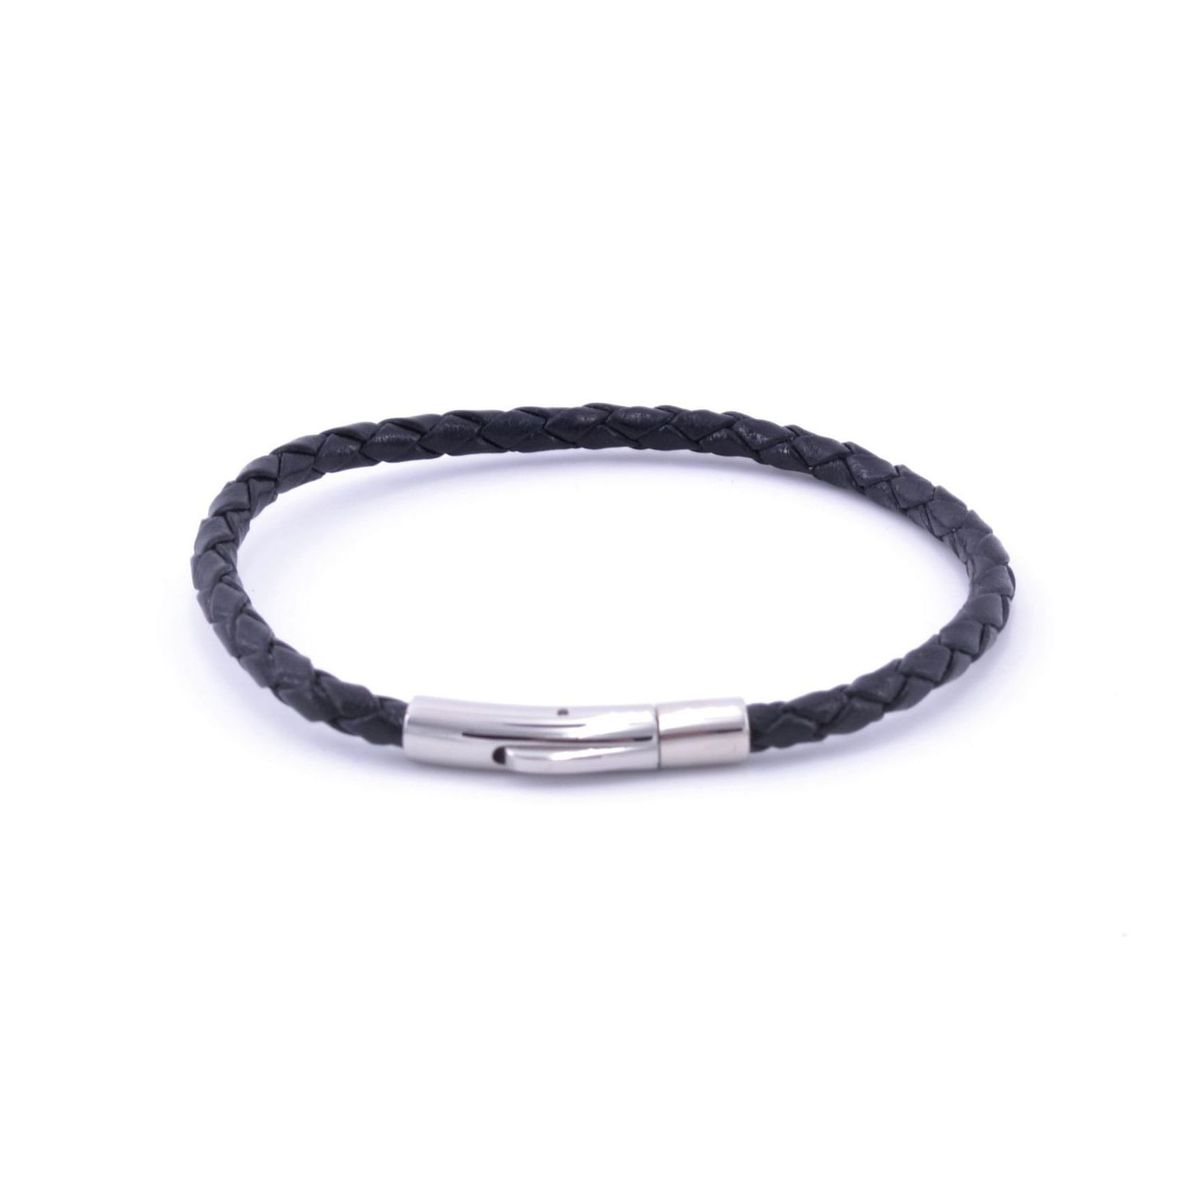 Braided leather bracelet 01 Black BRASS Workshop